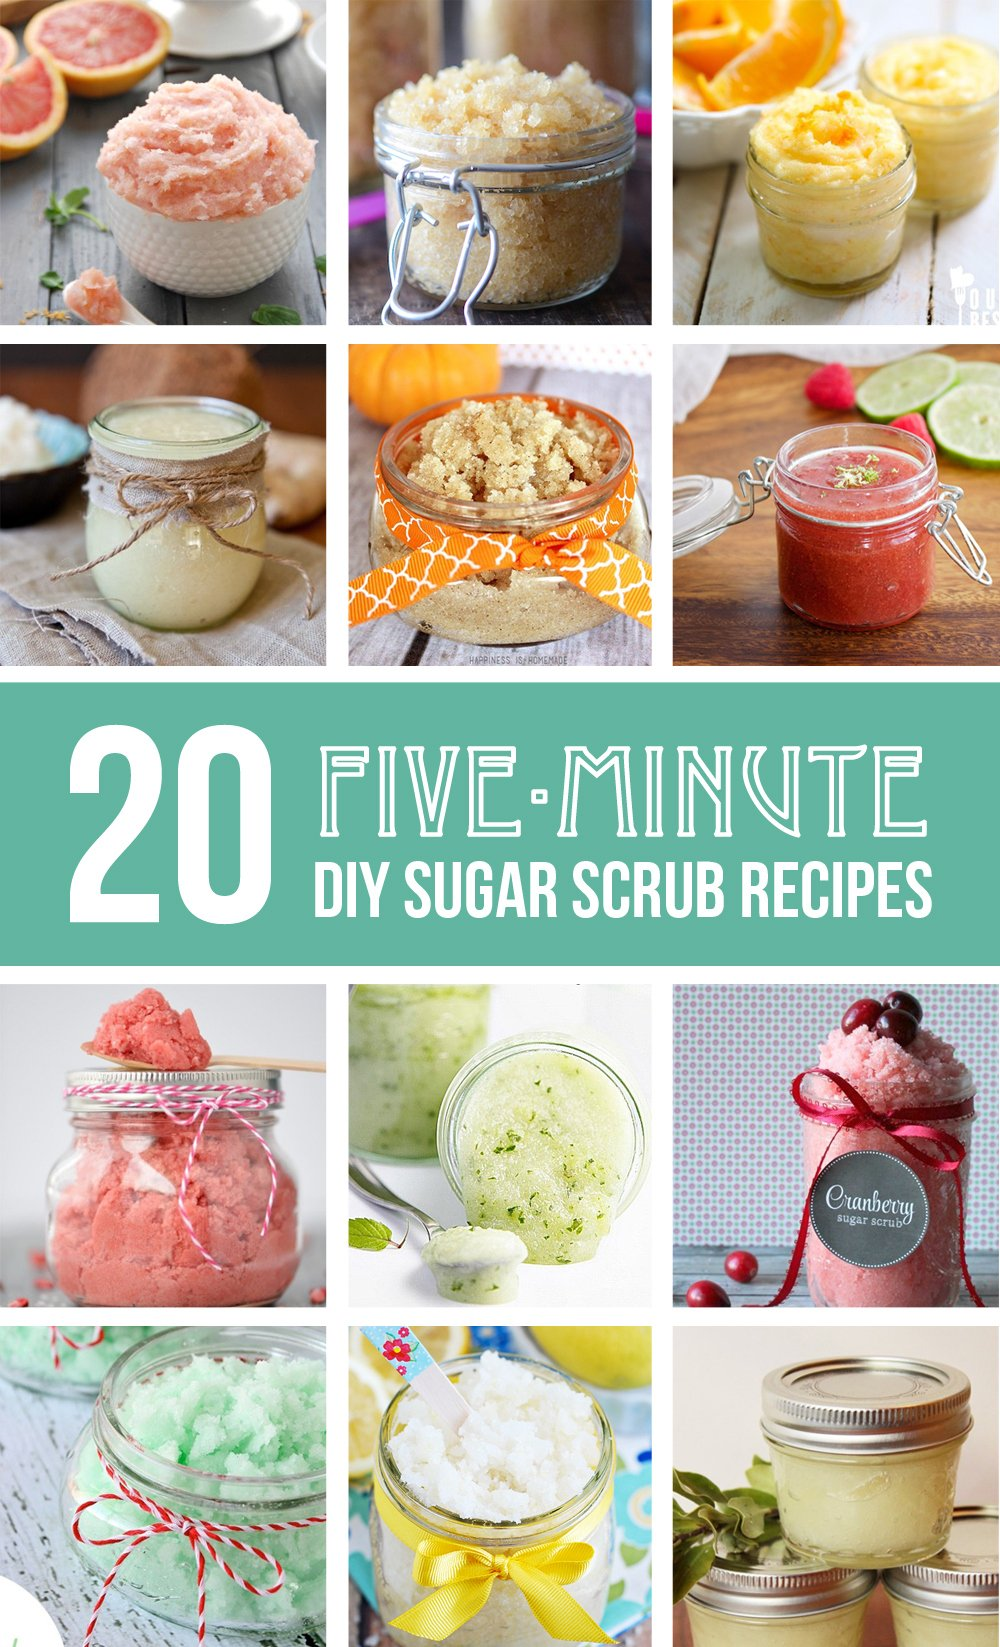 20 Homemade Sugar Scrub Recipes